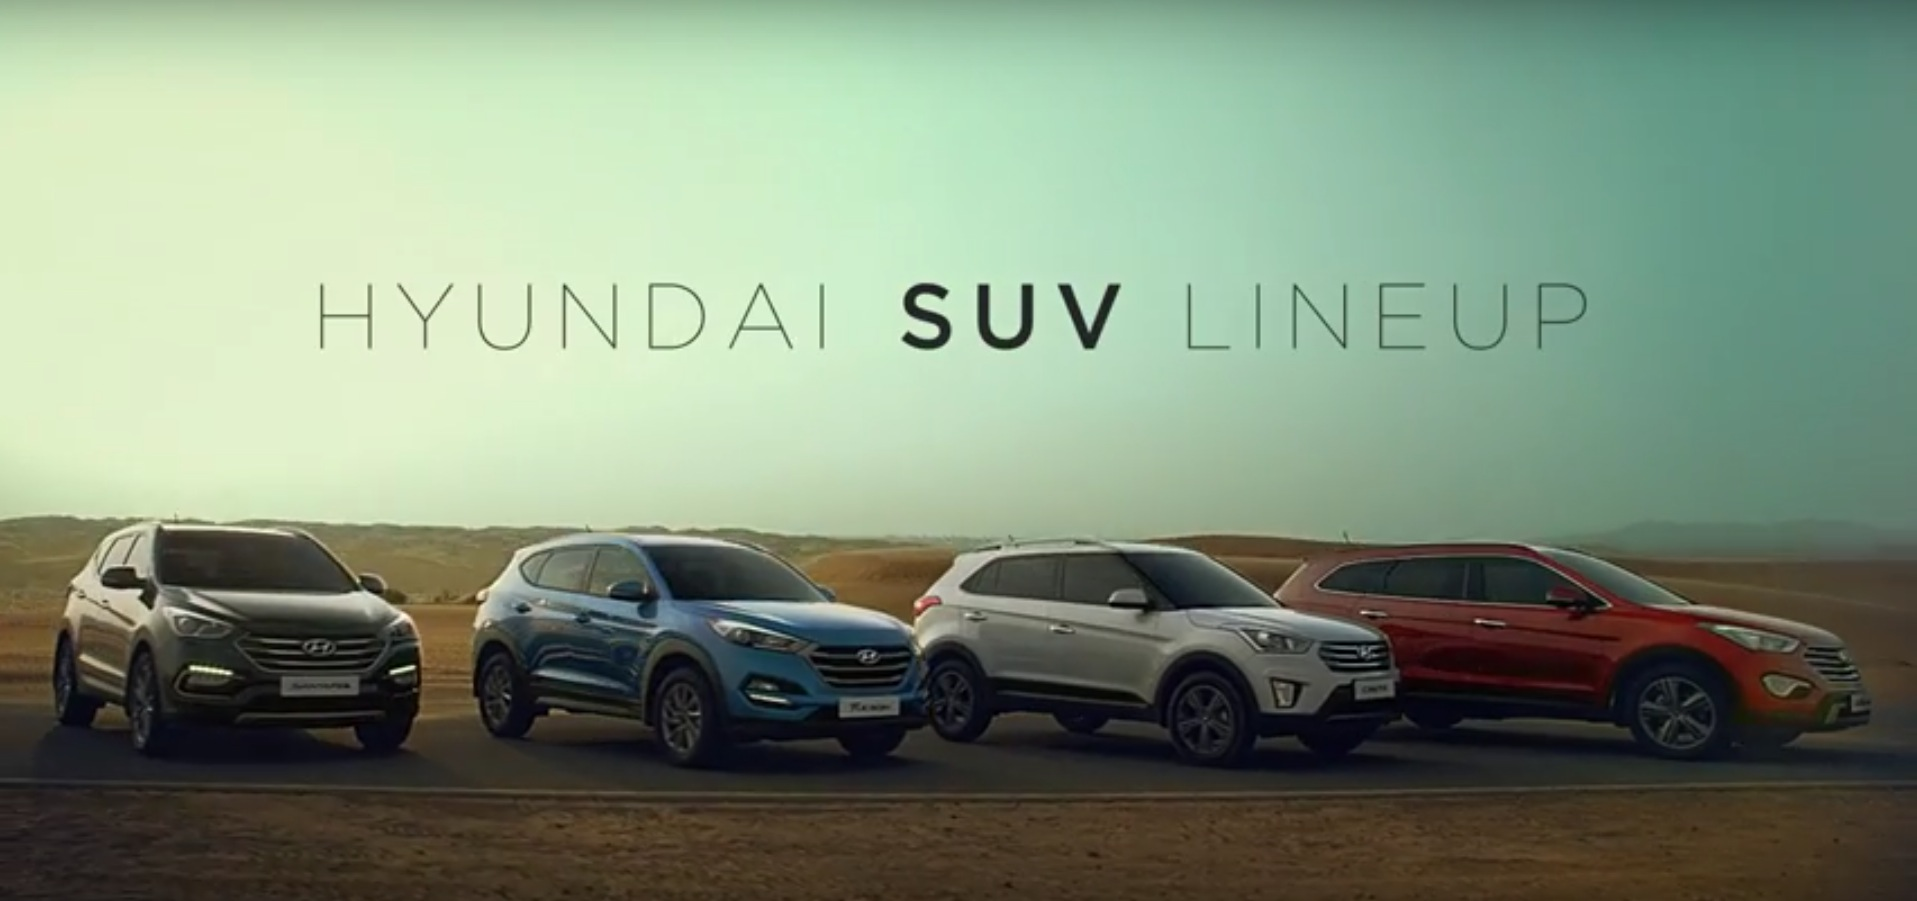 The Only Video Of All Hyundai Suvs Shows Creta Tucson Santa Fe And Grand